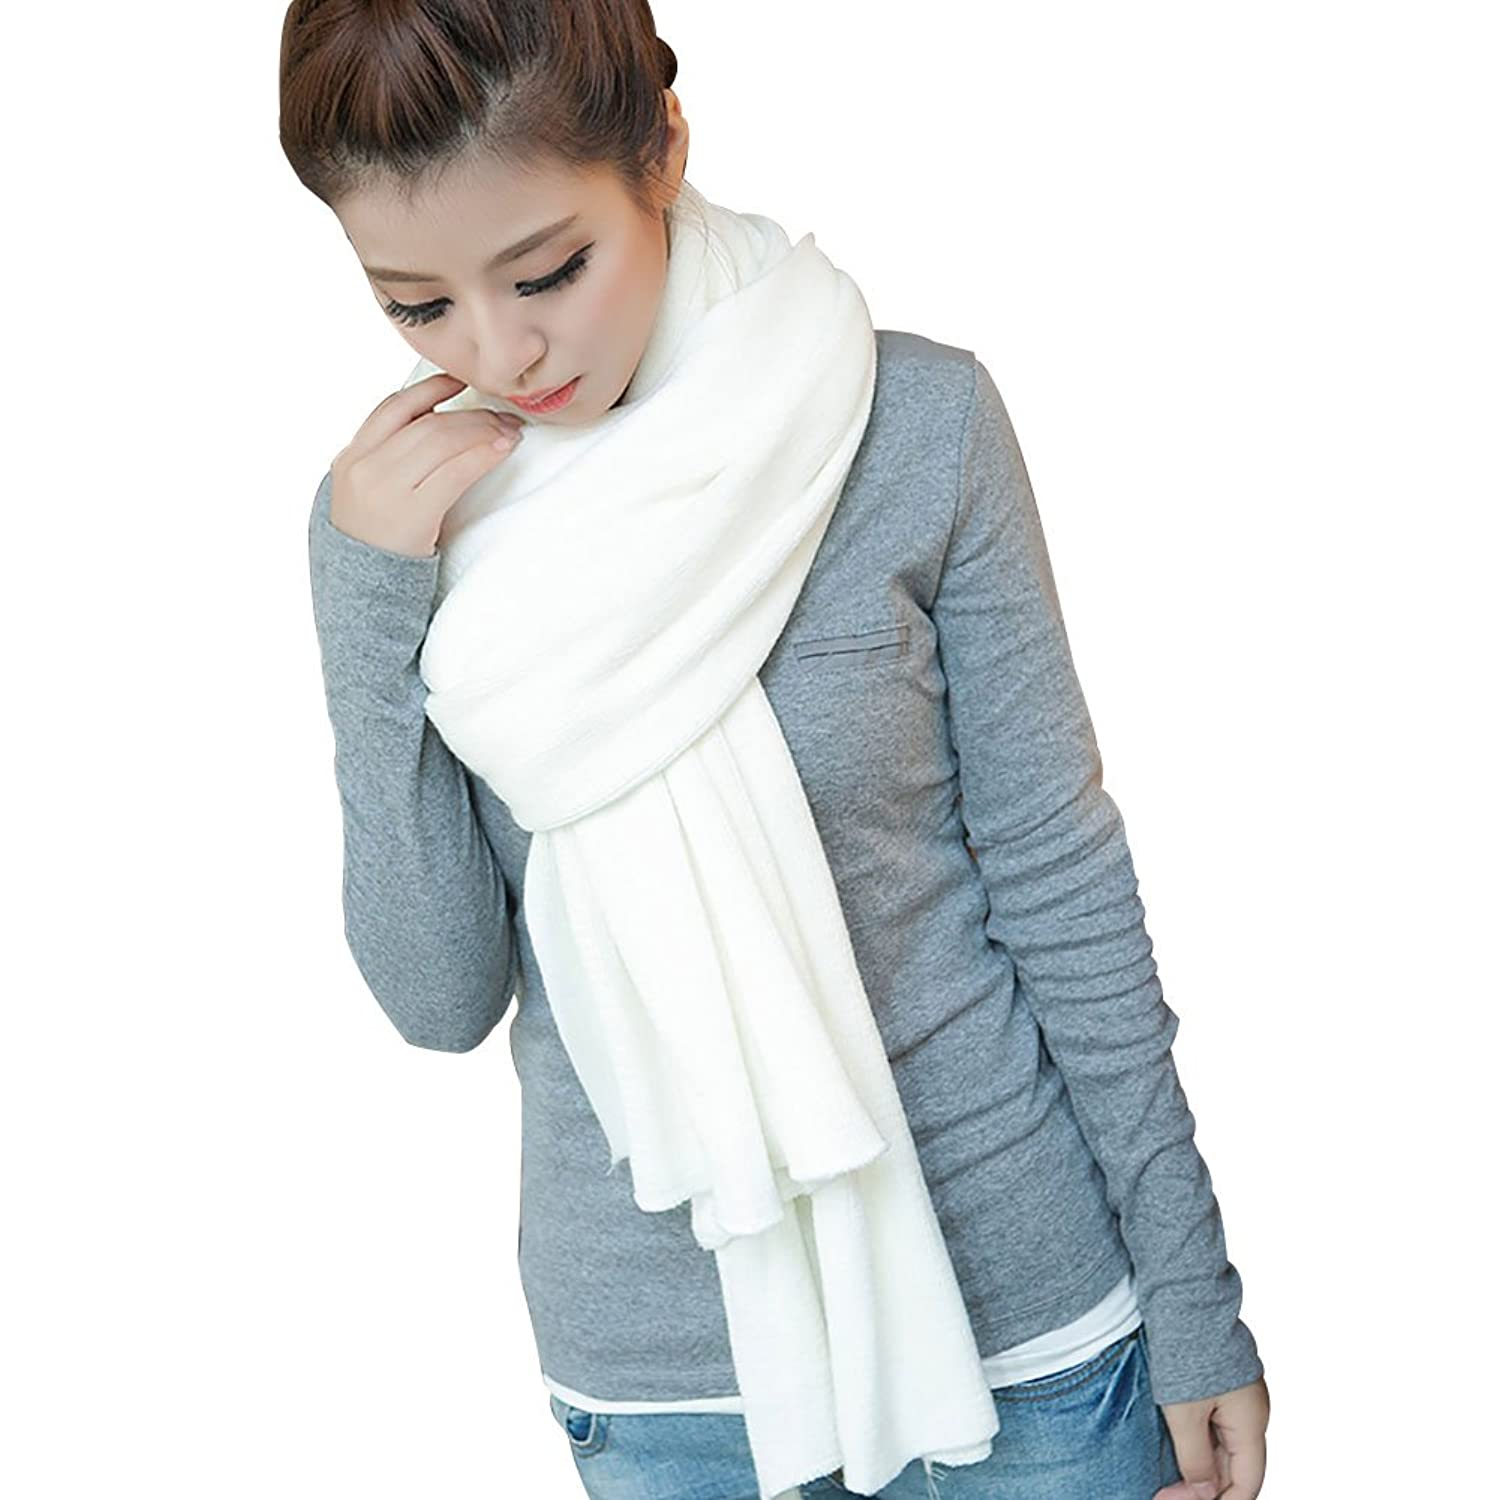 New Women Men Winter Warm Korean Pure Color Infinity Circle Cable Knit Cowl Neck Tassel Long Scarf Shawl